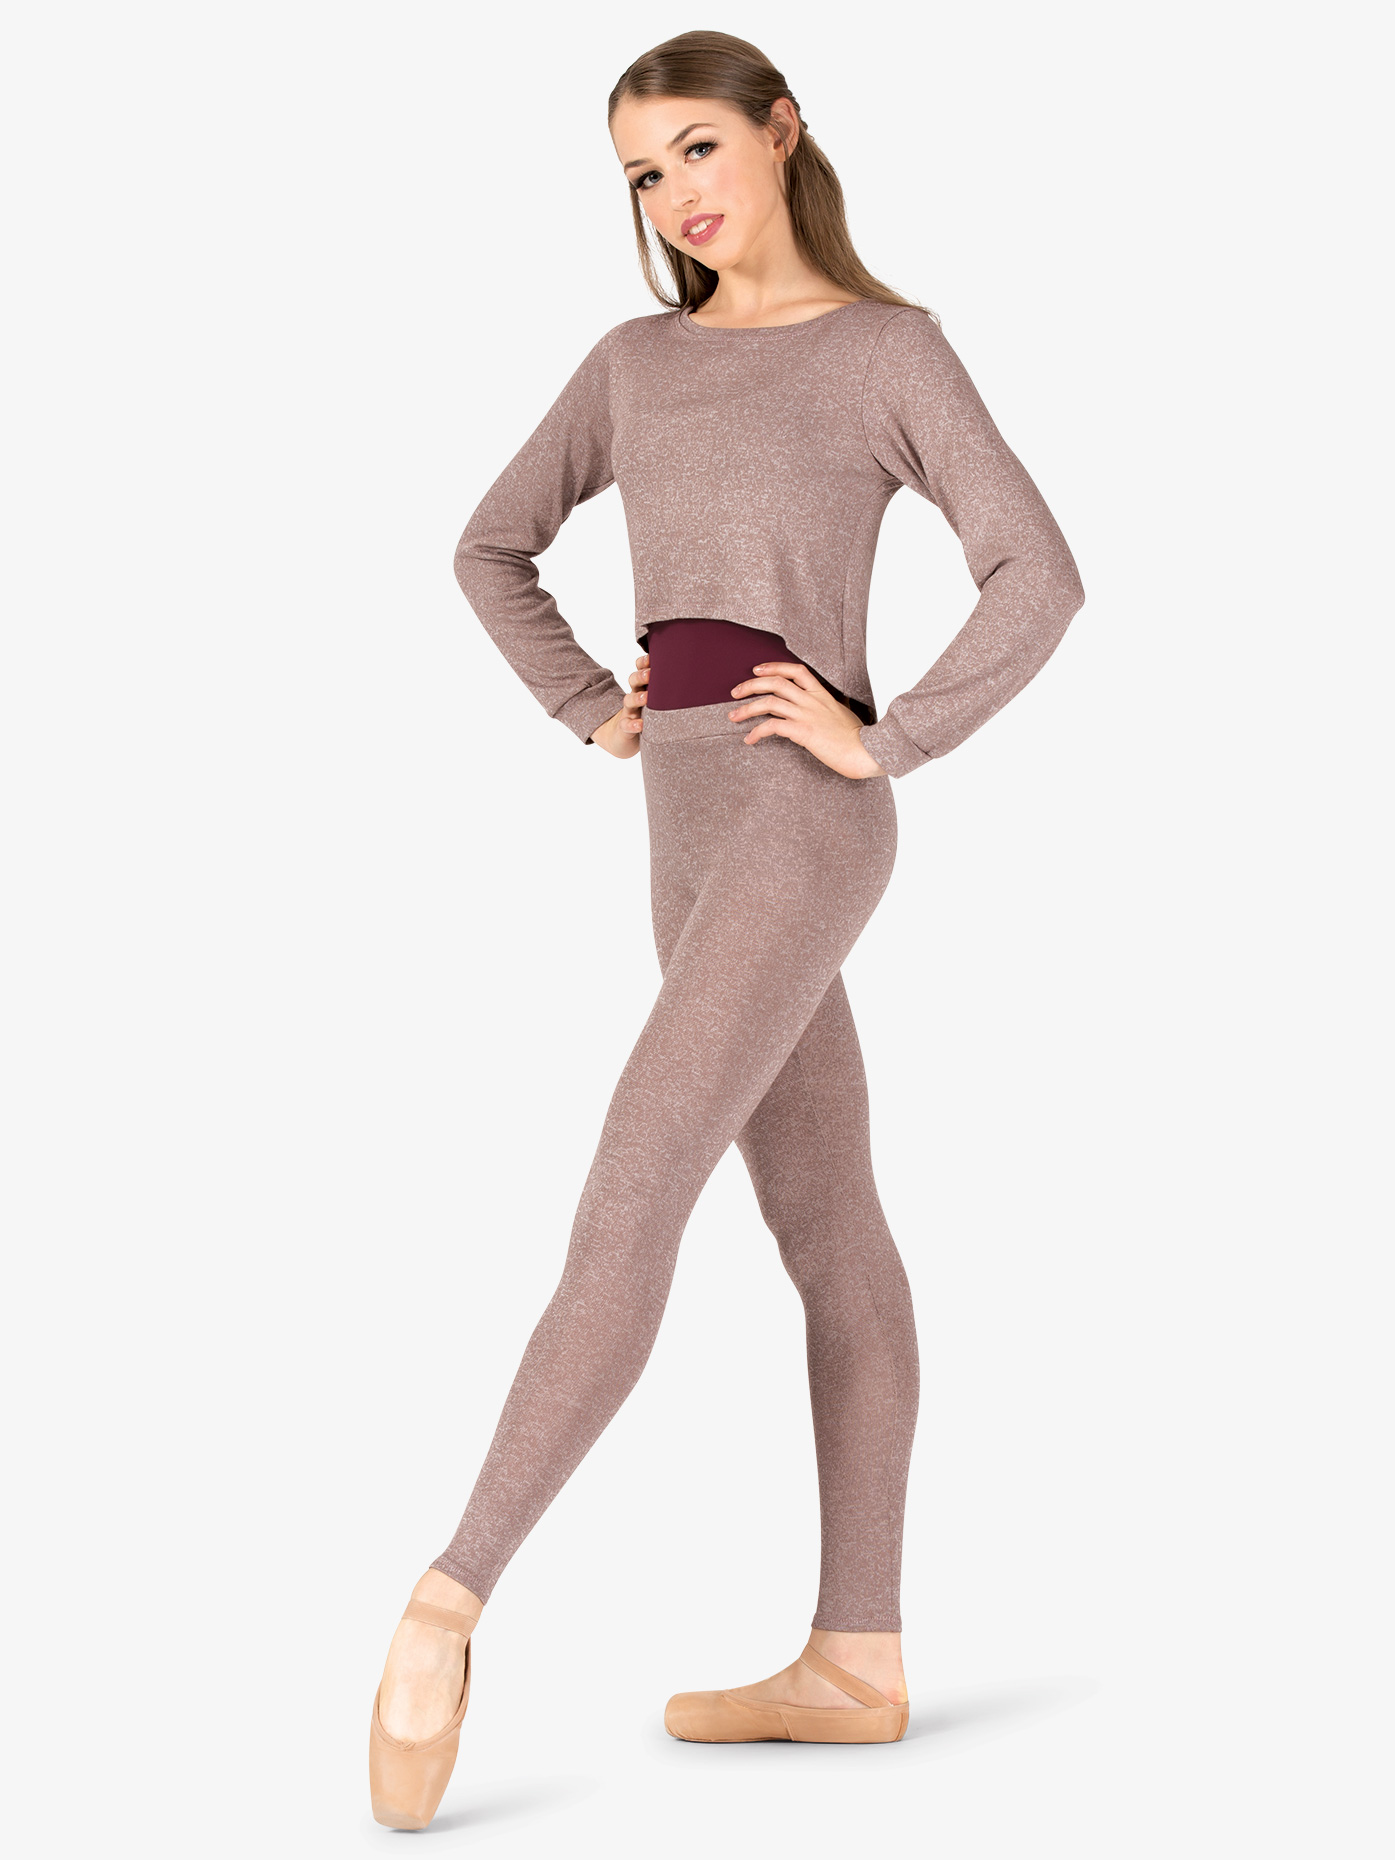 Natalie Womens Warm Up Leggings N9083